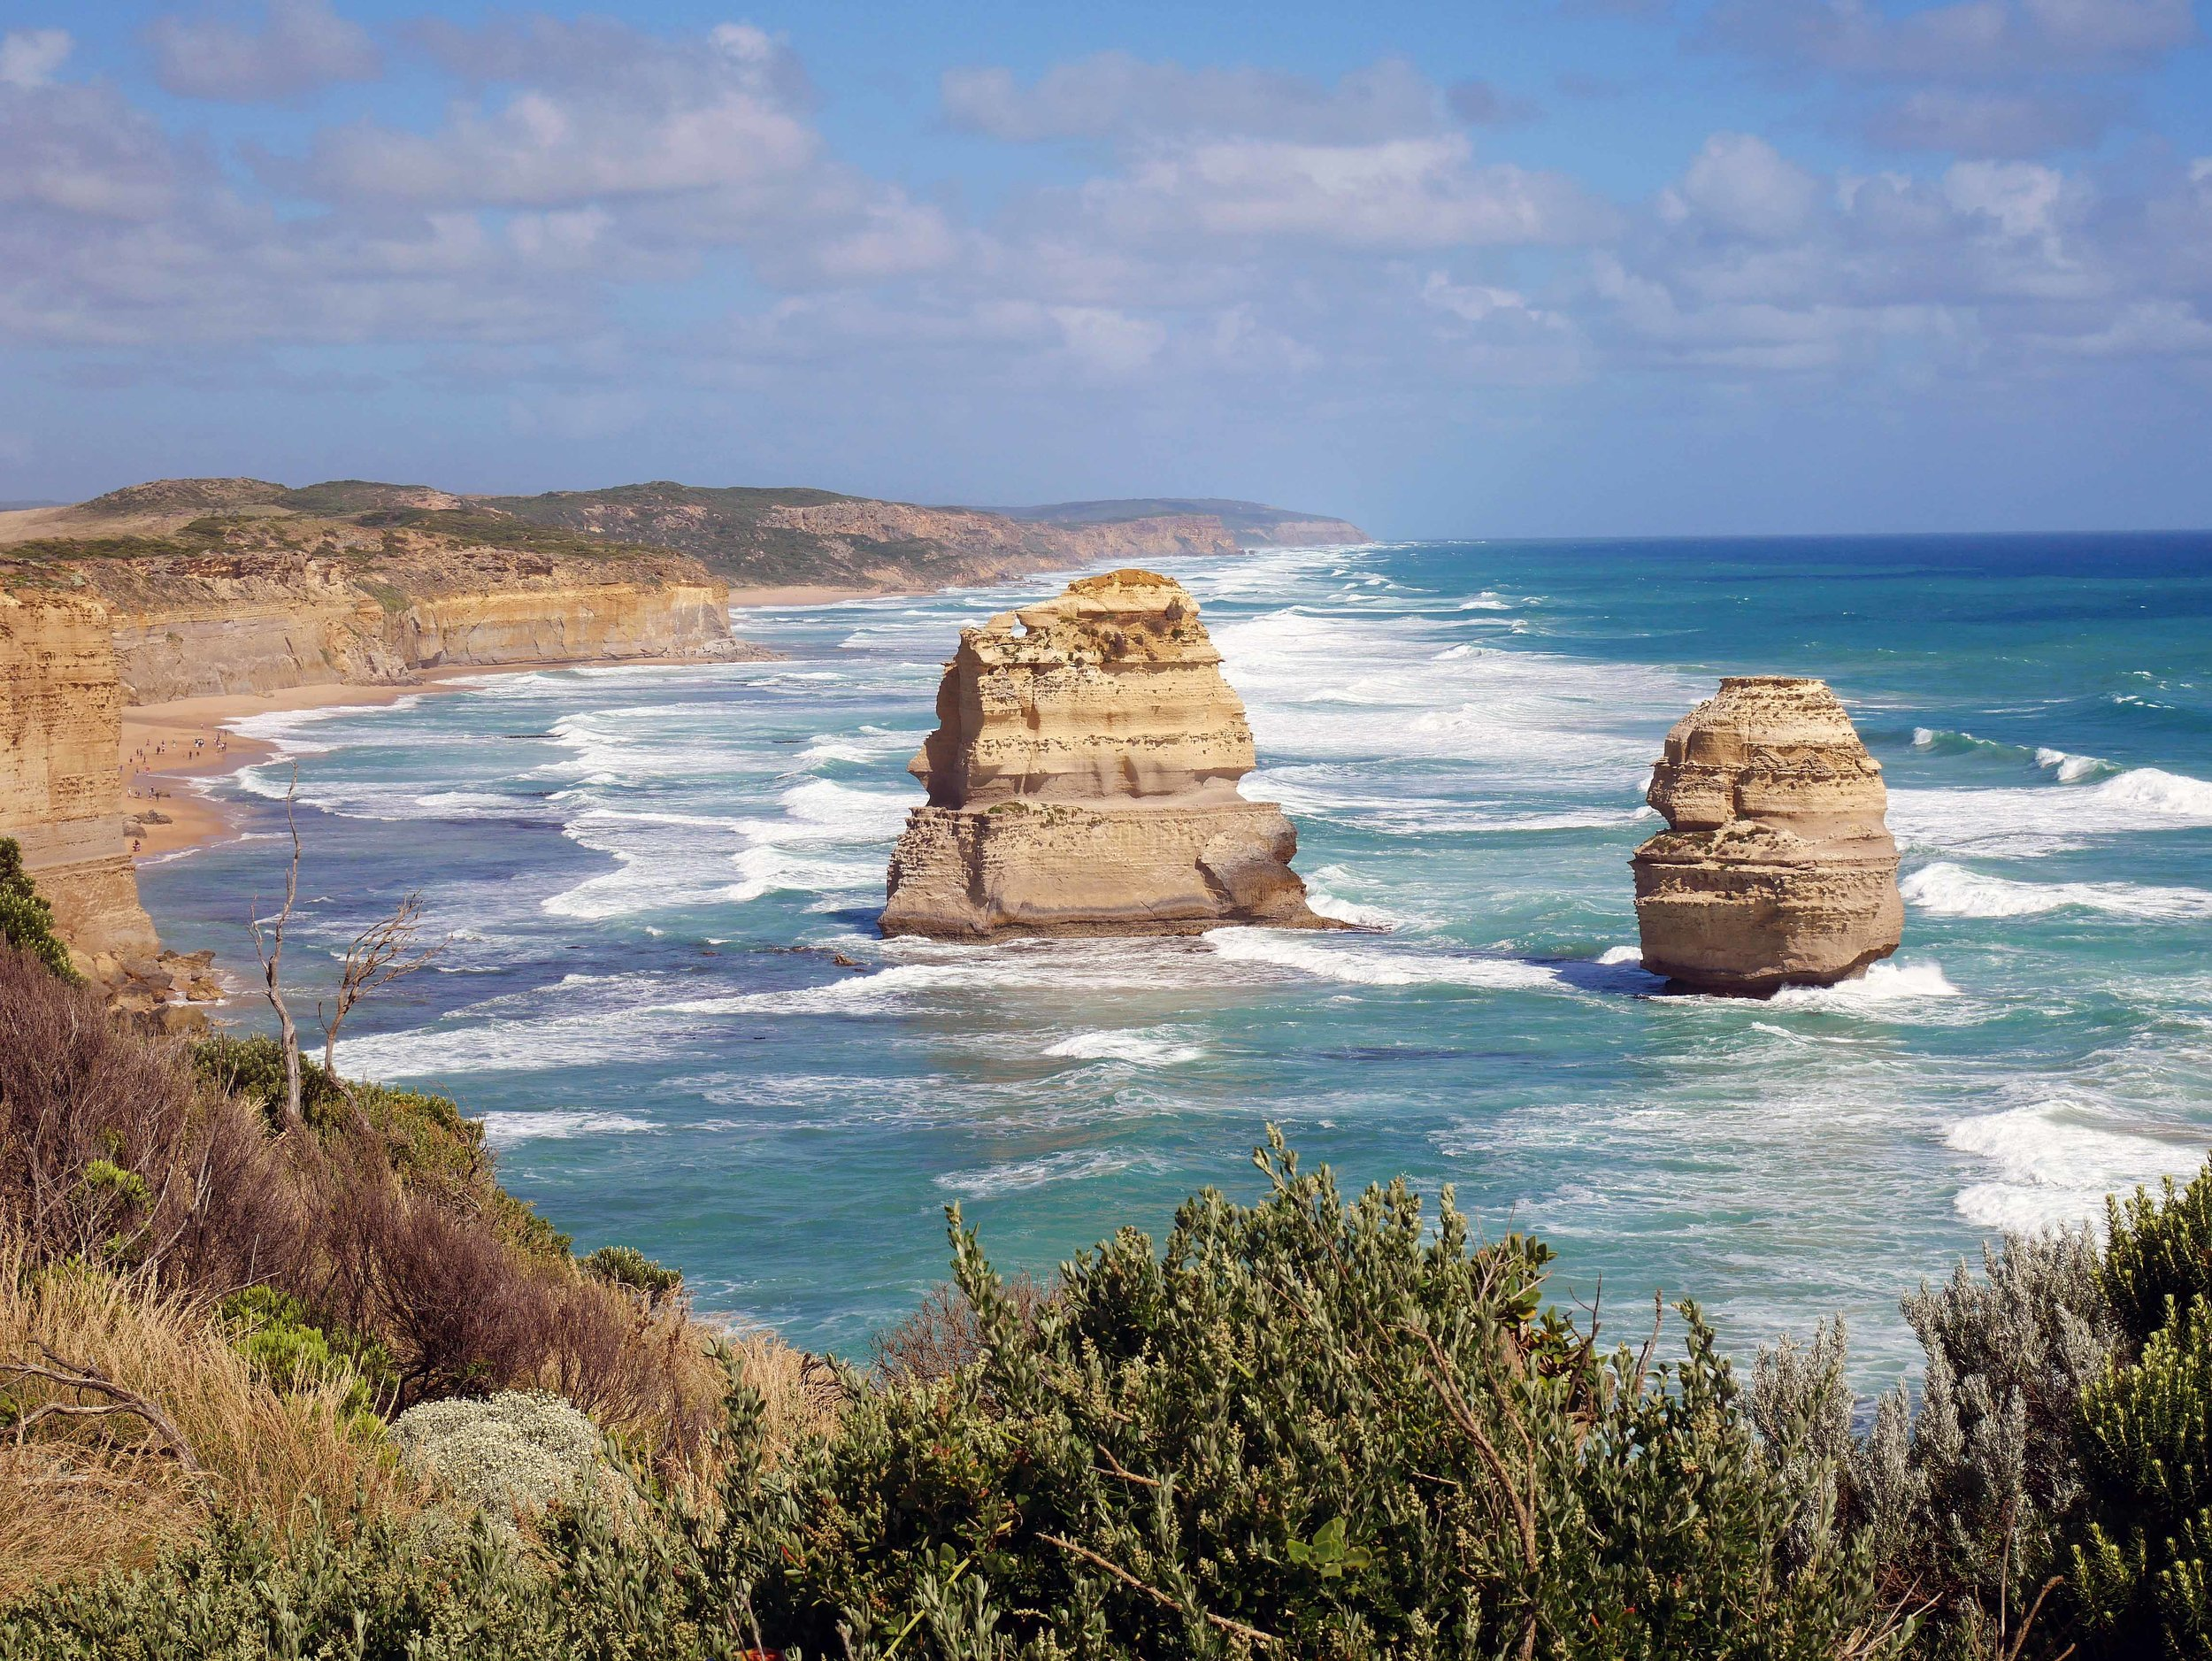 The Great Ocean Road is a magnificent 243 km drive along Australia's southern coast, west from Melbourne (Jan 24).